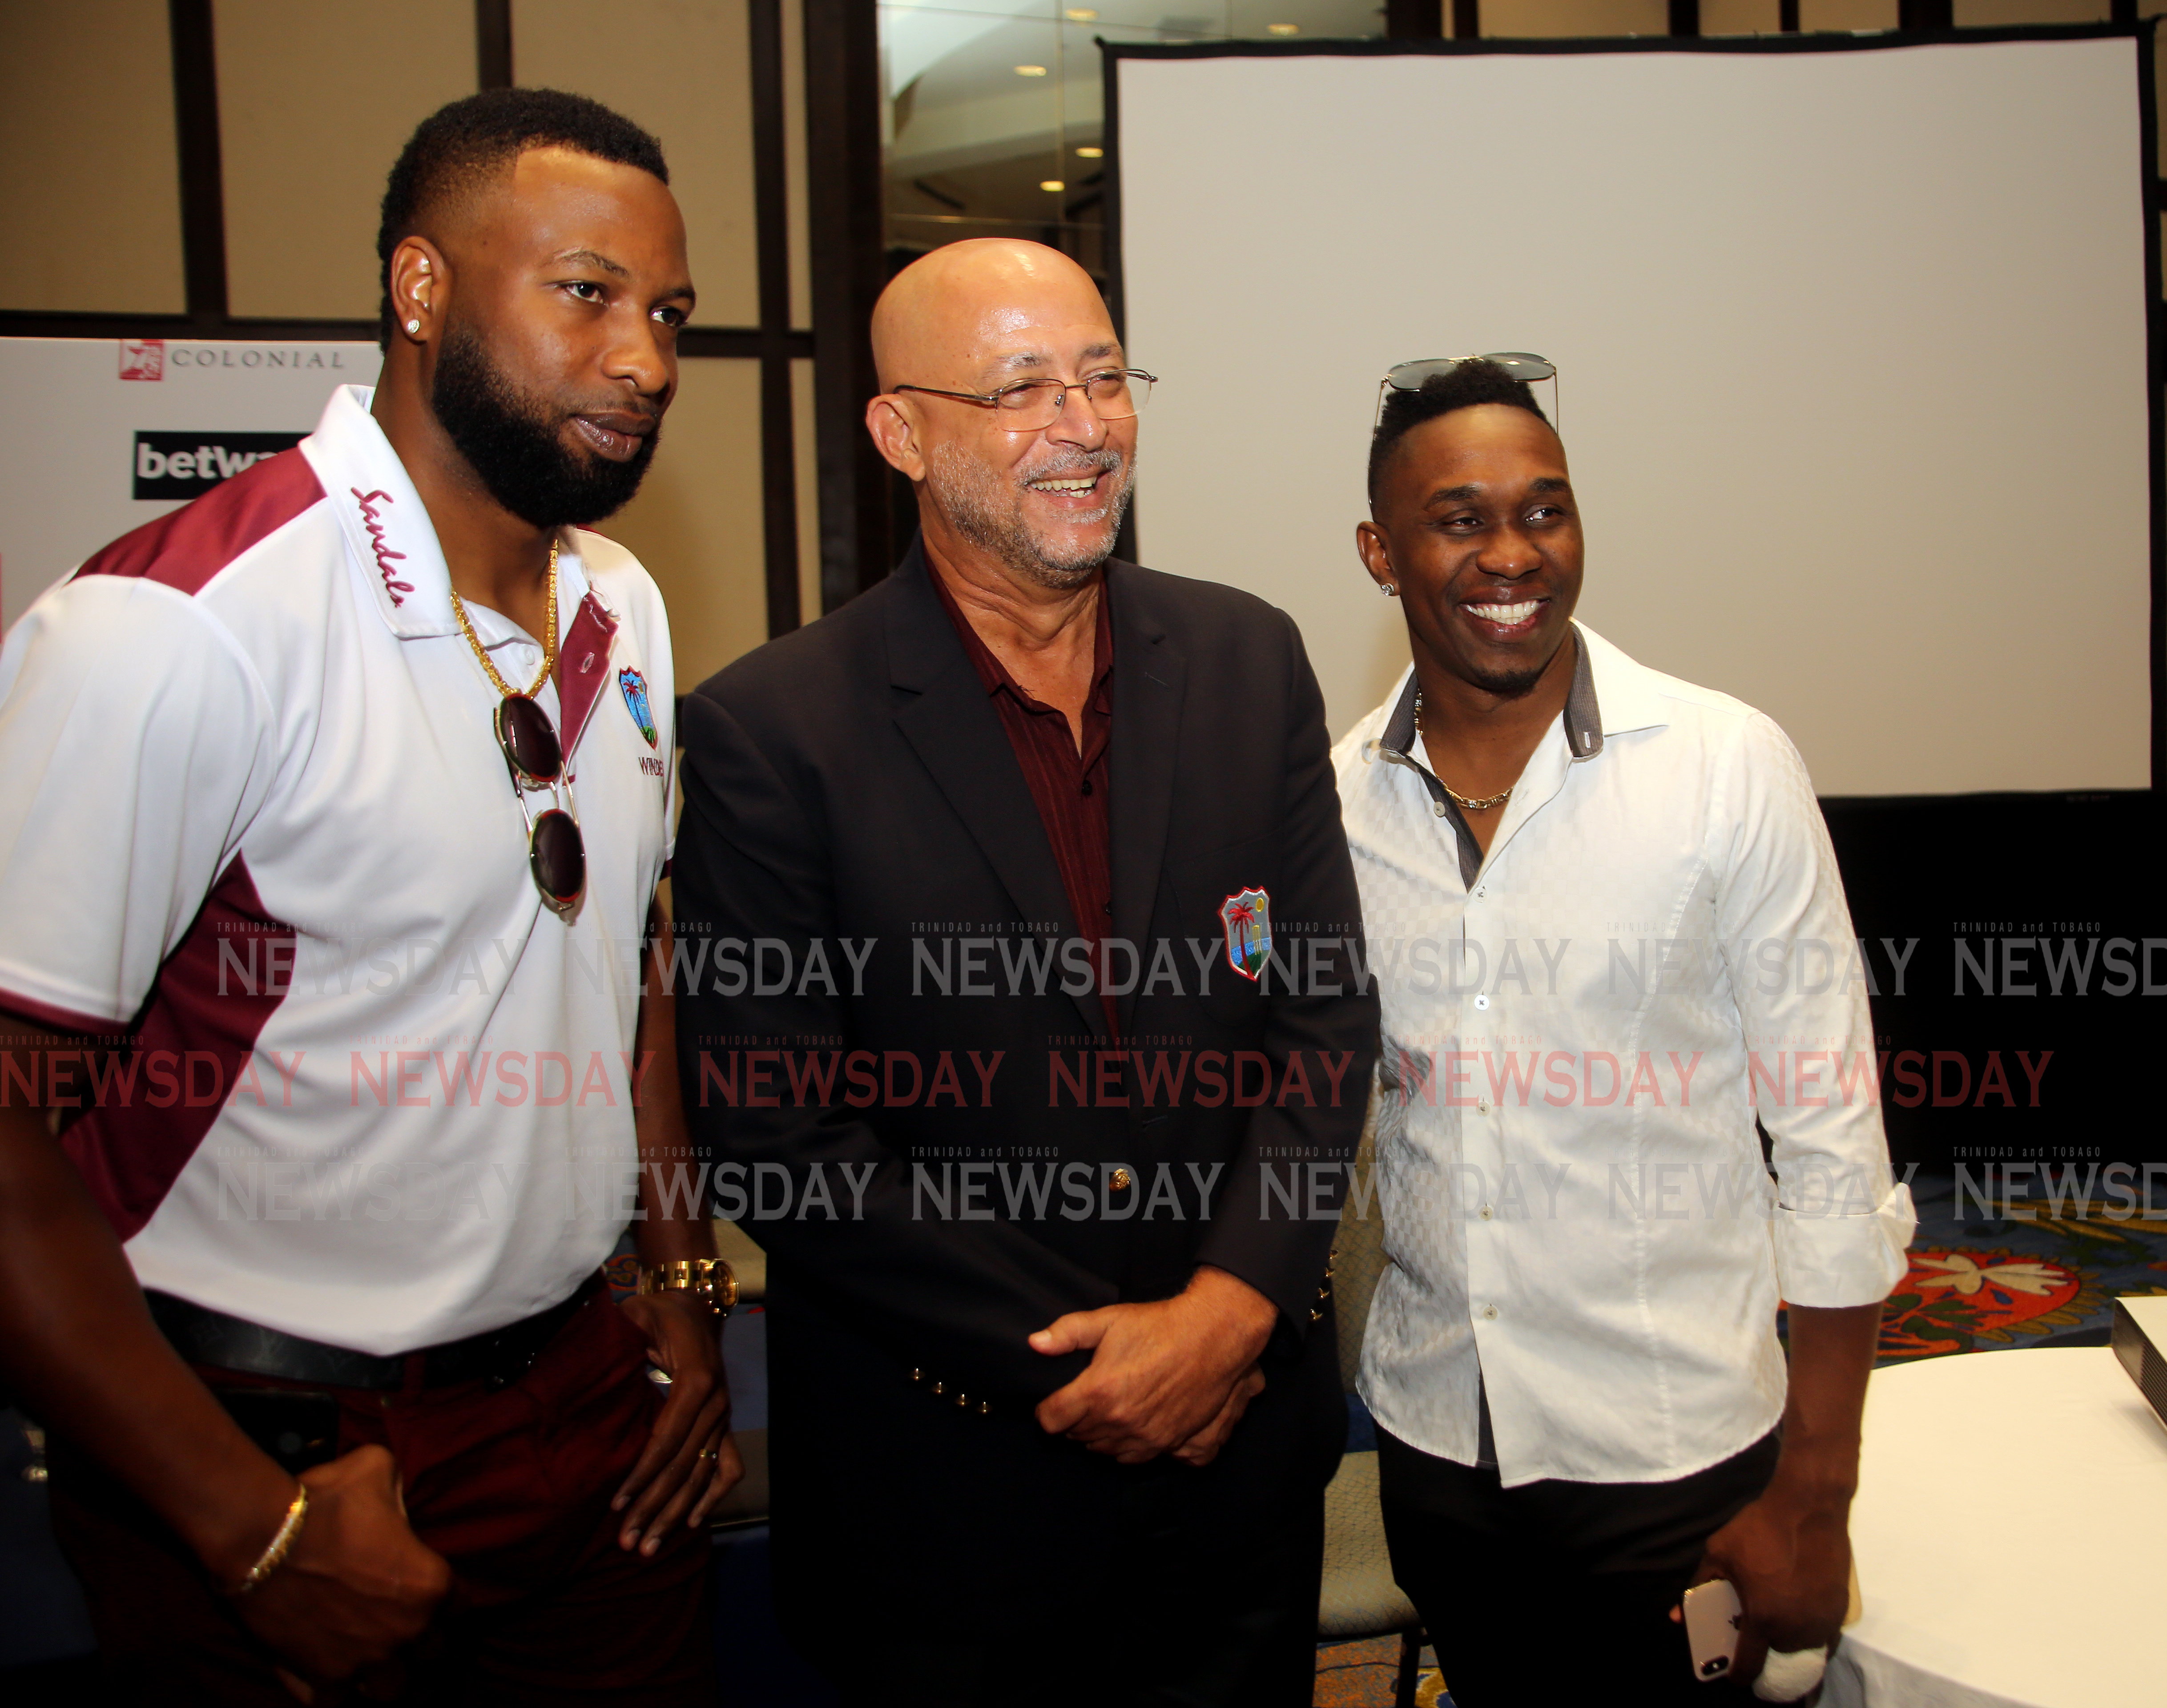 Kieron Pollard (from left)  Ricky Skerritt,  President of Cricket West Indies and  Dwayne Bravo,  during at press conference at Hilton Trinidad in which Pollard was name captain of the West Indies' one-day international and T20 teams .   PHOTO SUREASH CHOLAI